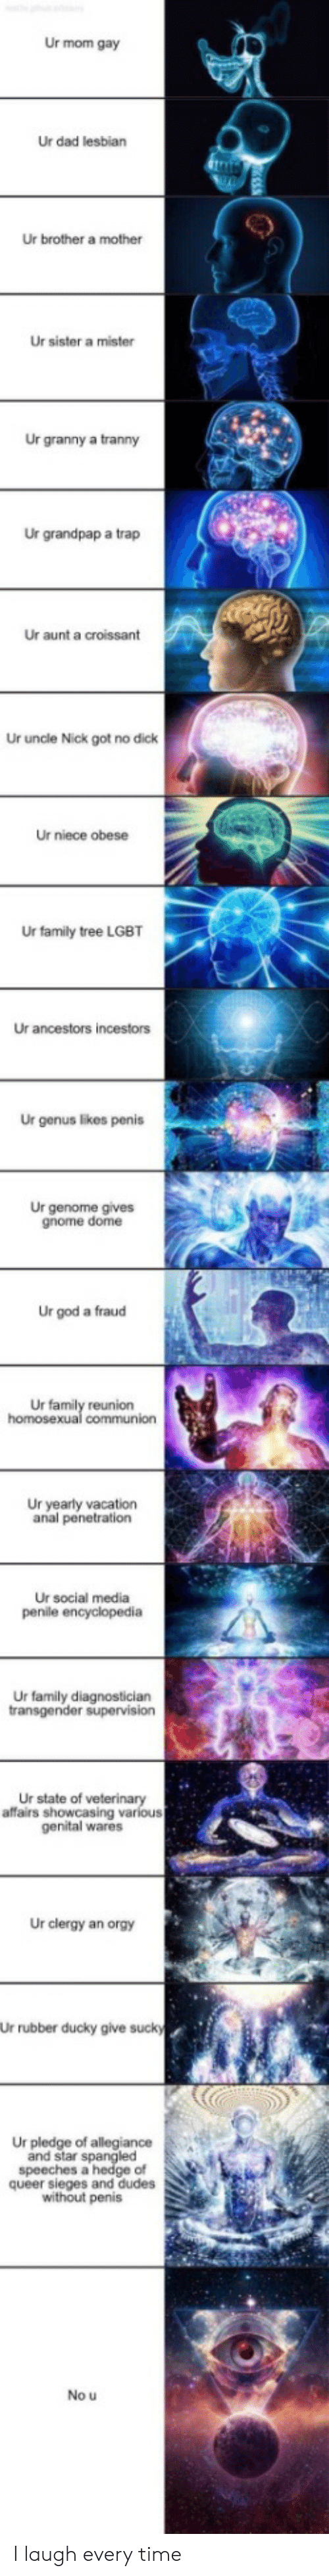 Vacation: Ur mom gay  Ur dad lesbian  Ur brother a mother  Ur sister a mister  Ur granny a tranny  Ur grandpap a trap  Ur aunt a croissant  Ur uncle Nick got no dick  Ur niece obese  Ur family tree LGBT  Ur ancestors incestors  Ur genus likes penis  Ur genome gives  gnome dome  Ur god a fraud  Ur family reunion  homosexual communion  Ur yearly vacation  anal penetration  Ur social media  penile encyclopedia  Ur family diagnostician  transgender supervision  Ur state of veterinary  affairs showcasing various  genital wares  Ur clergy an orgy  Ur rubber ducky give sucky  Ur pledge of allegiance  and star spangled  speeches a hedge of  queer sieges and dudes  without penis  No u I laugh every time